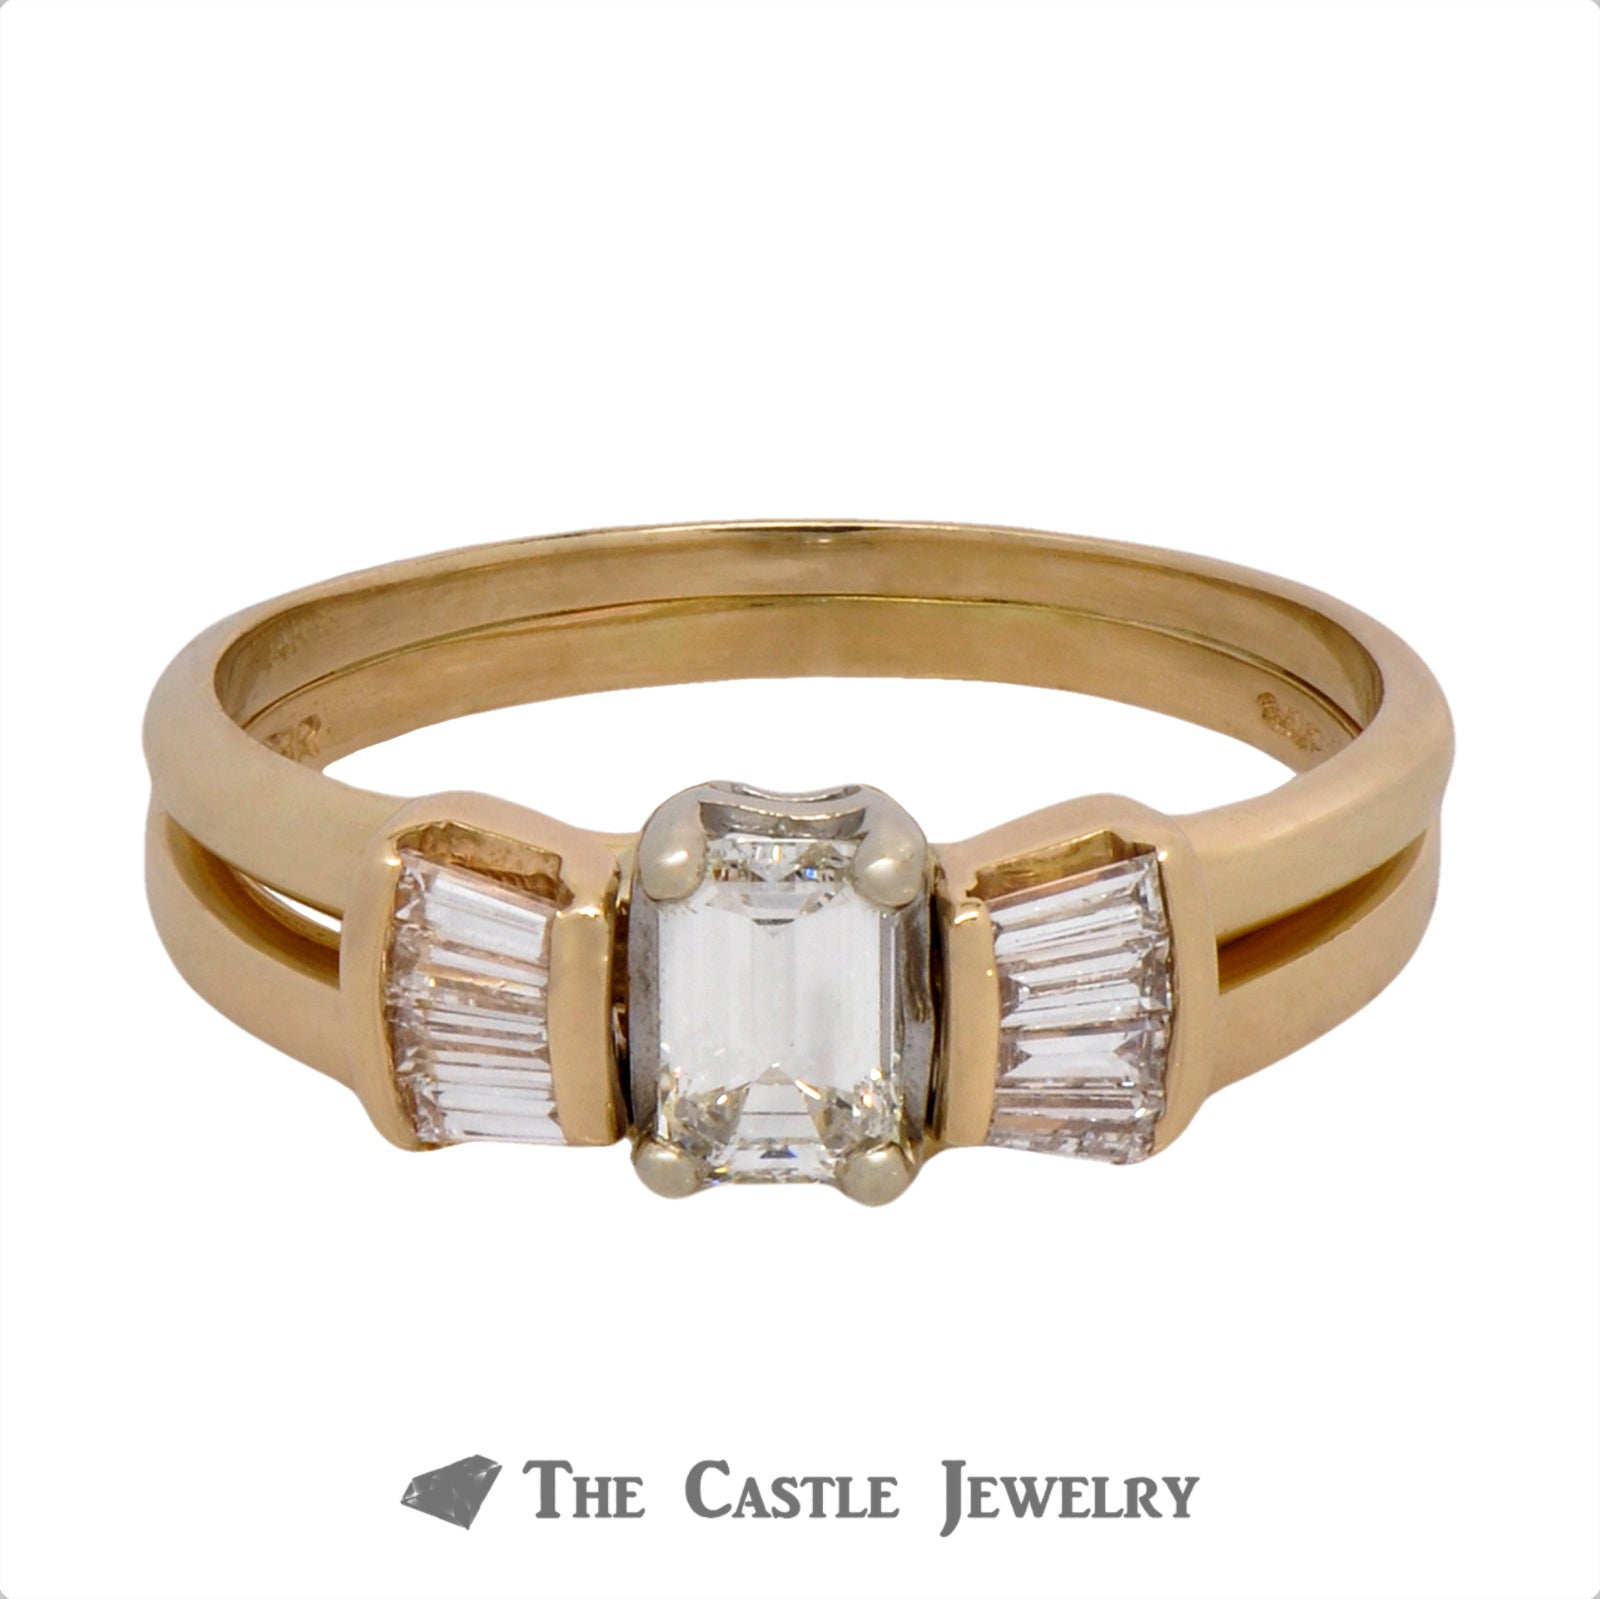 Emerald Cut Bridal Set with Baguette Accents Crafted in 14k Yellow Gold